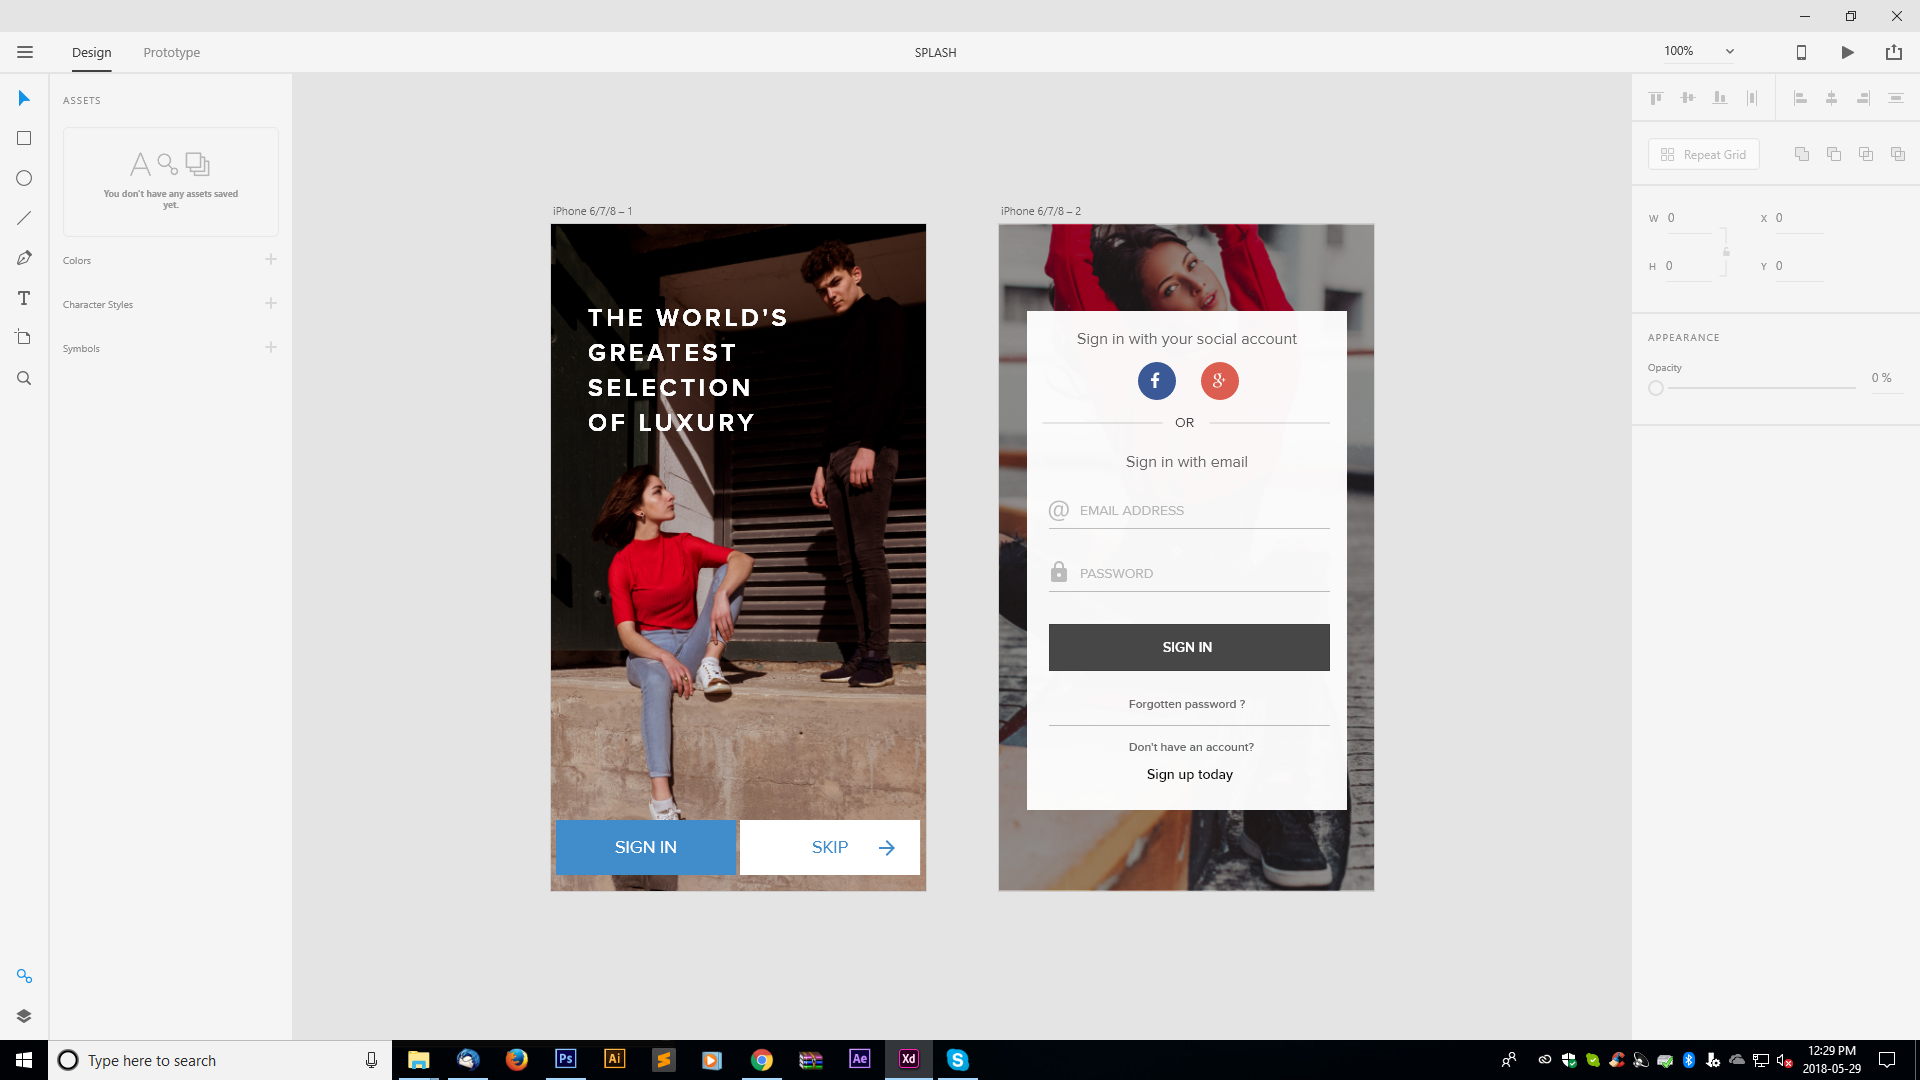 Adobe XD Live Project - KNILA